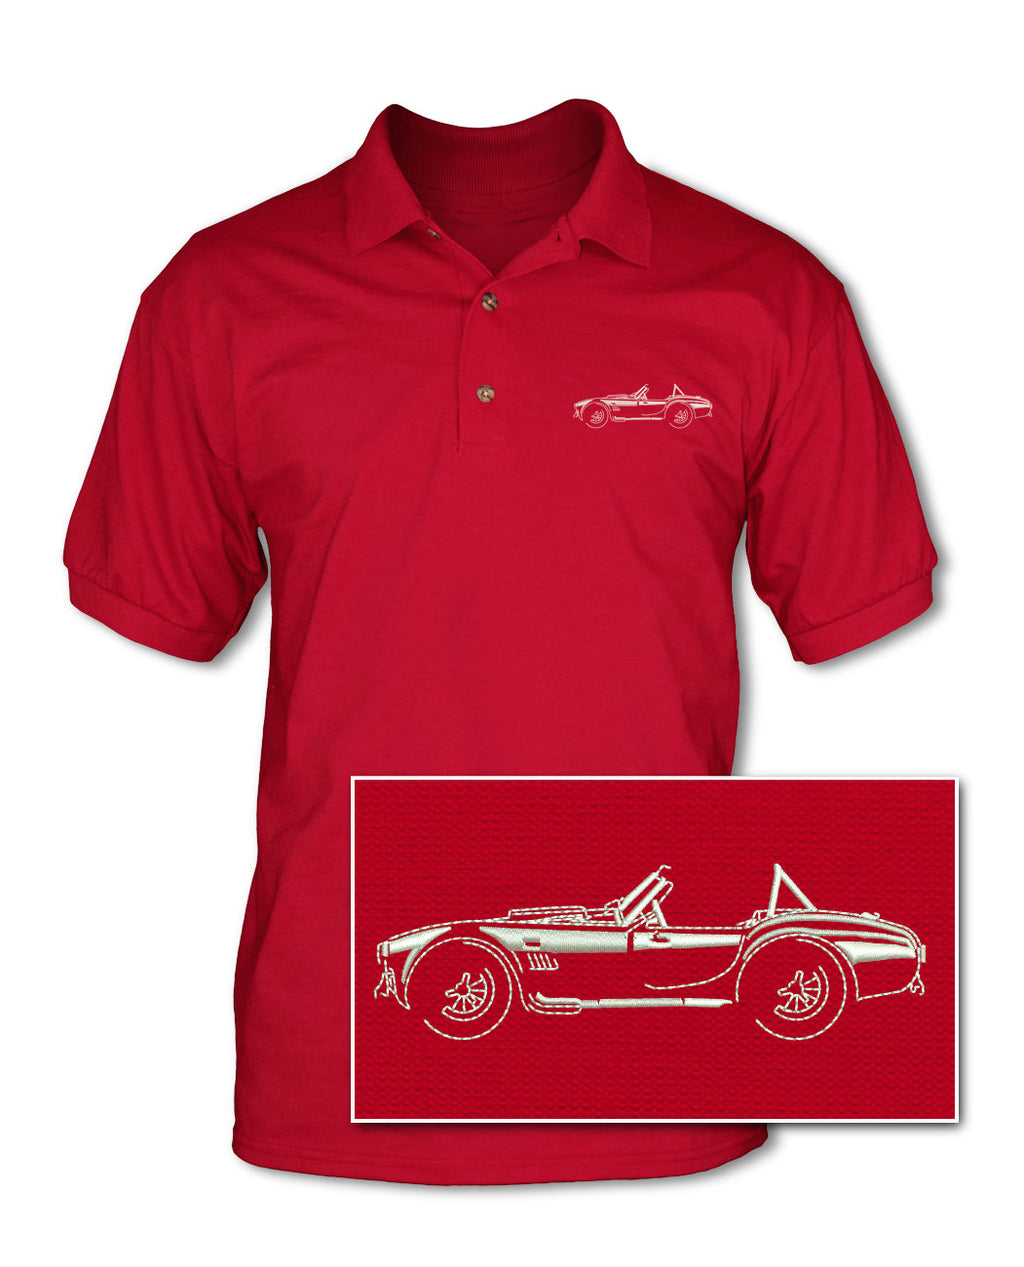 1965 AC Shelby Cobra 427 SC Side View Adult Pique Polo Shirt